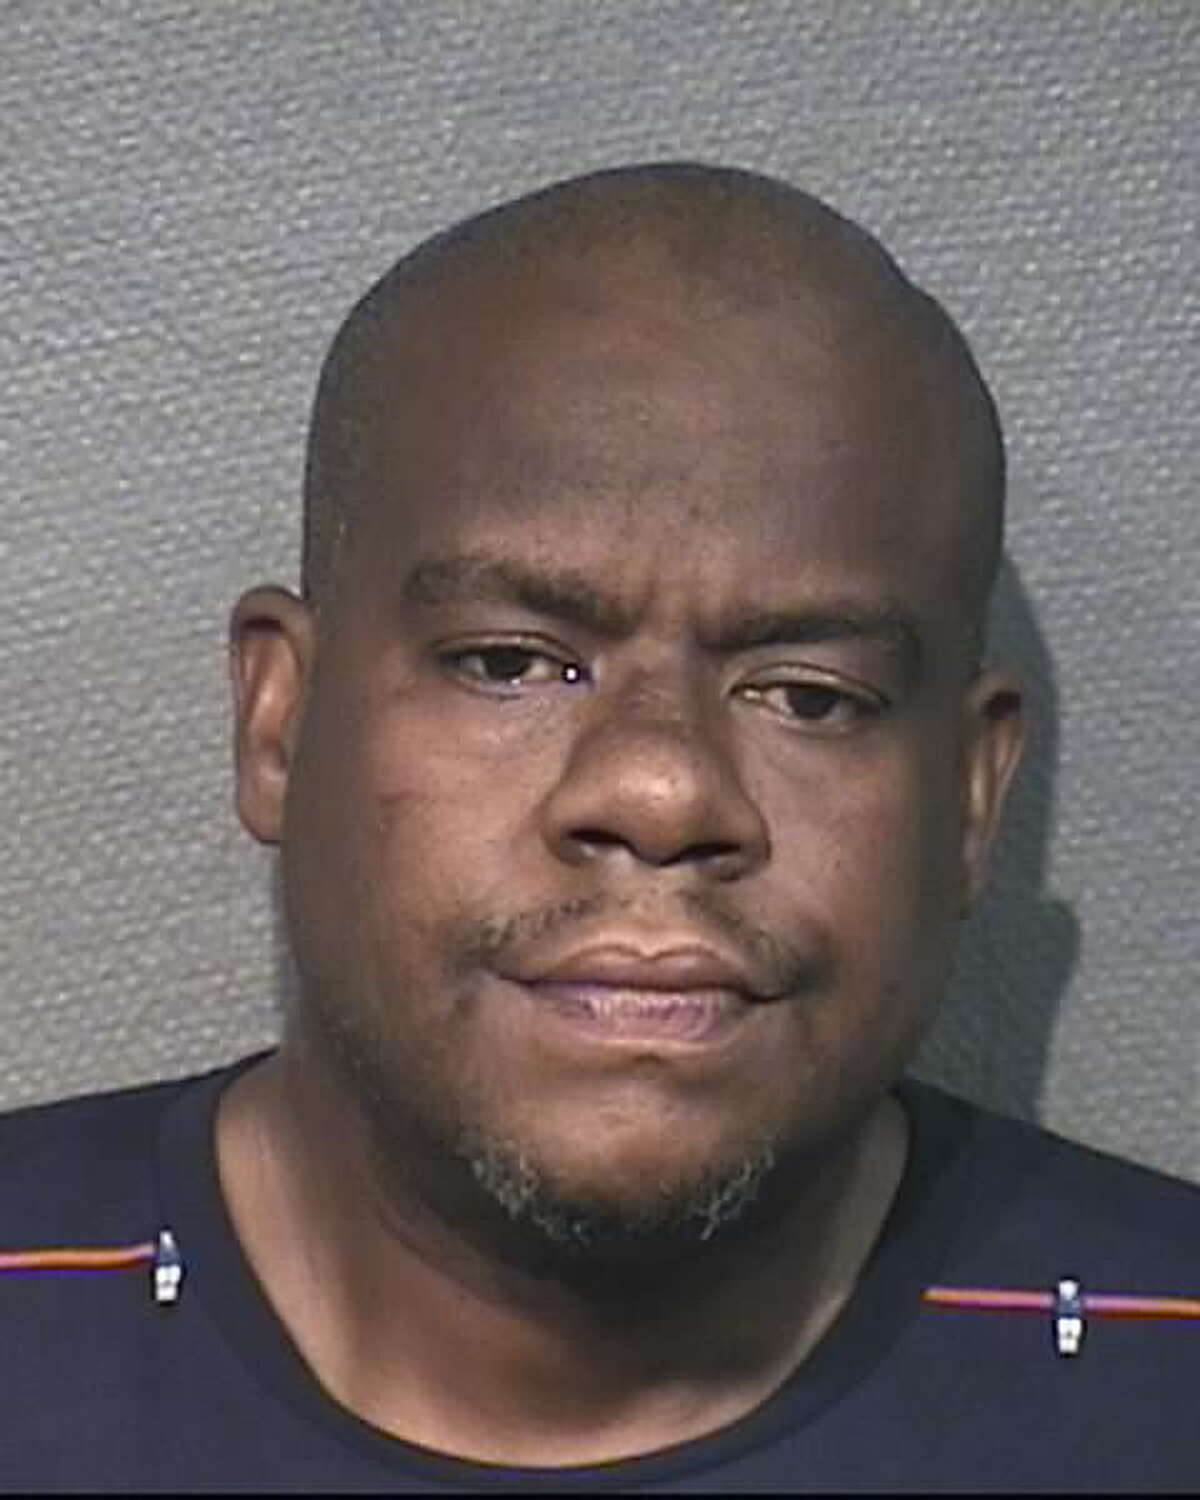 Douglas Hingawas arrested in May 2018 on a third charge of DWI.